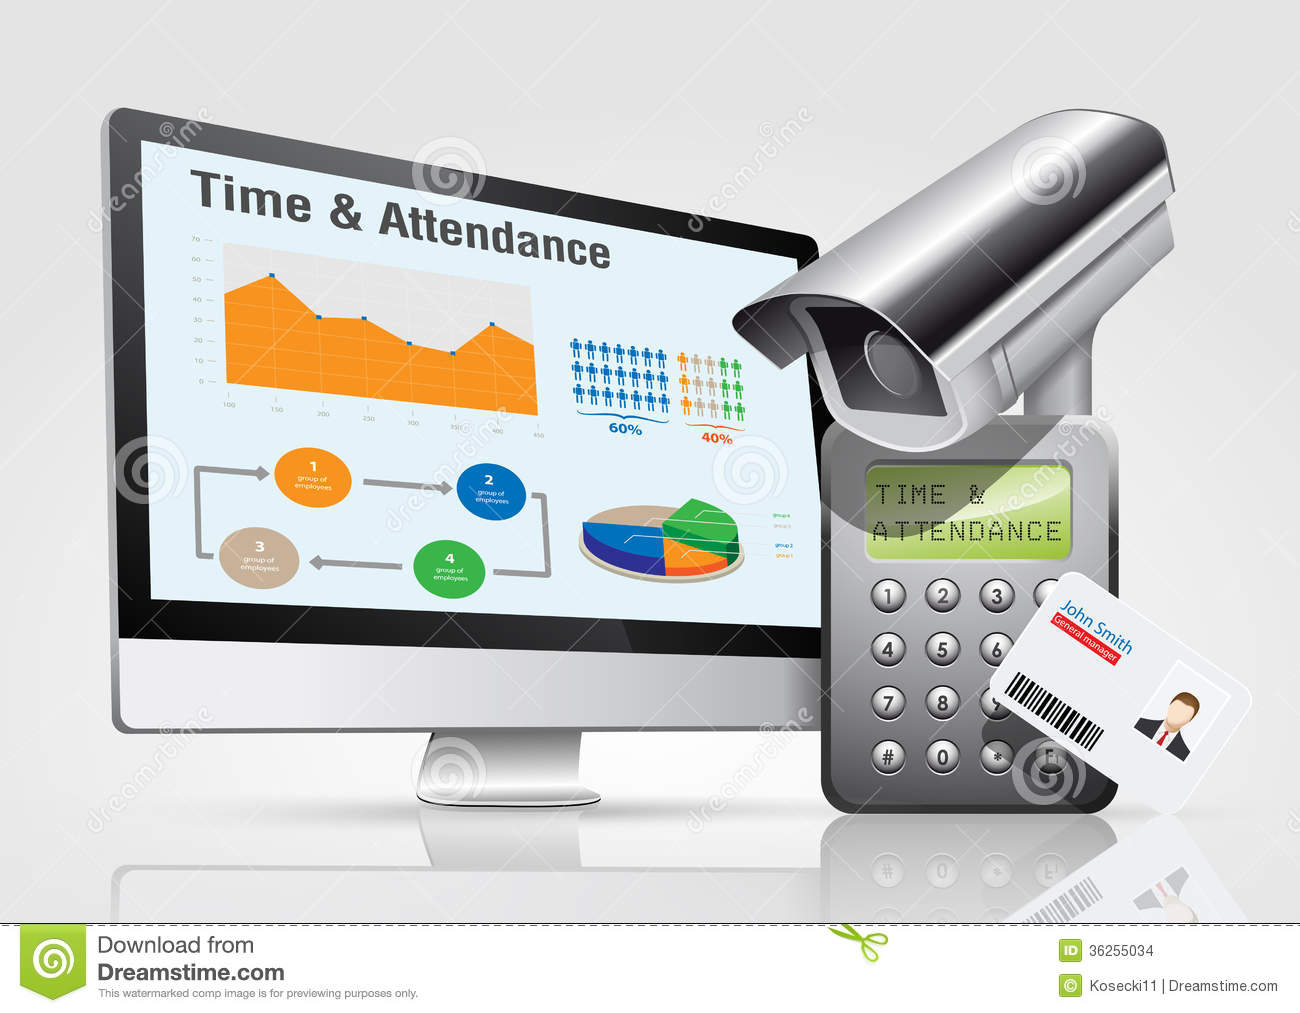 Access control - time & attendance 1